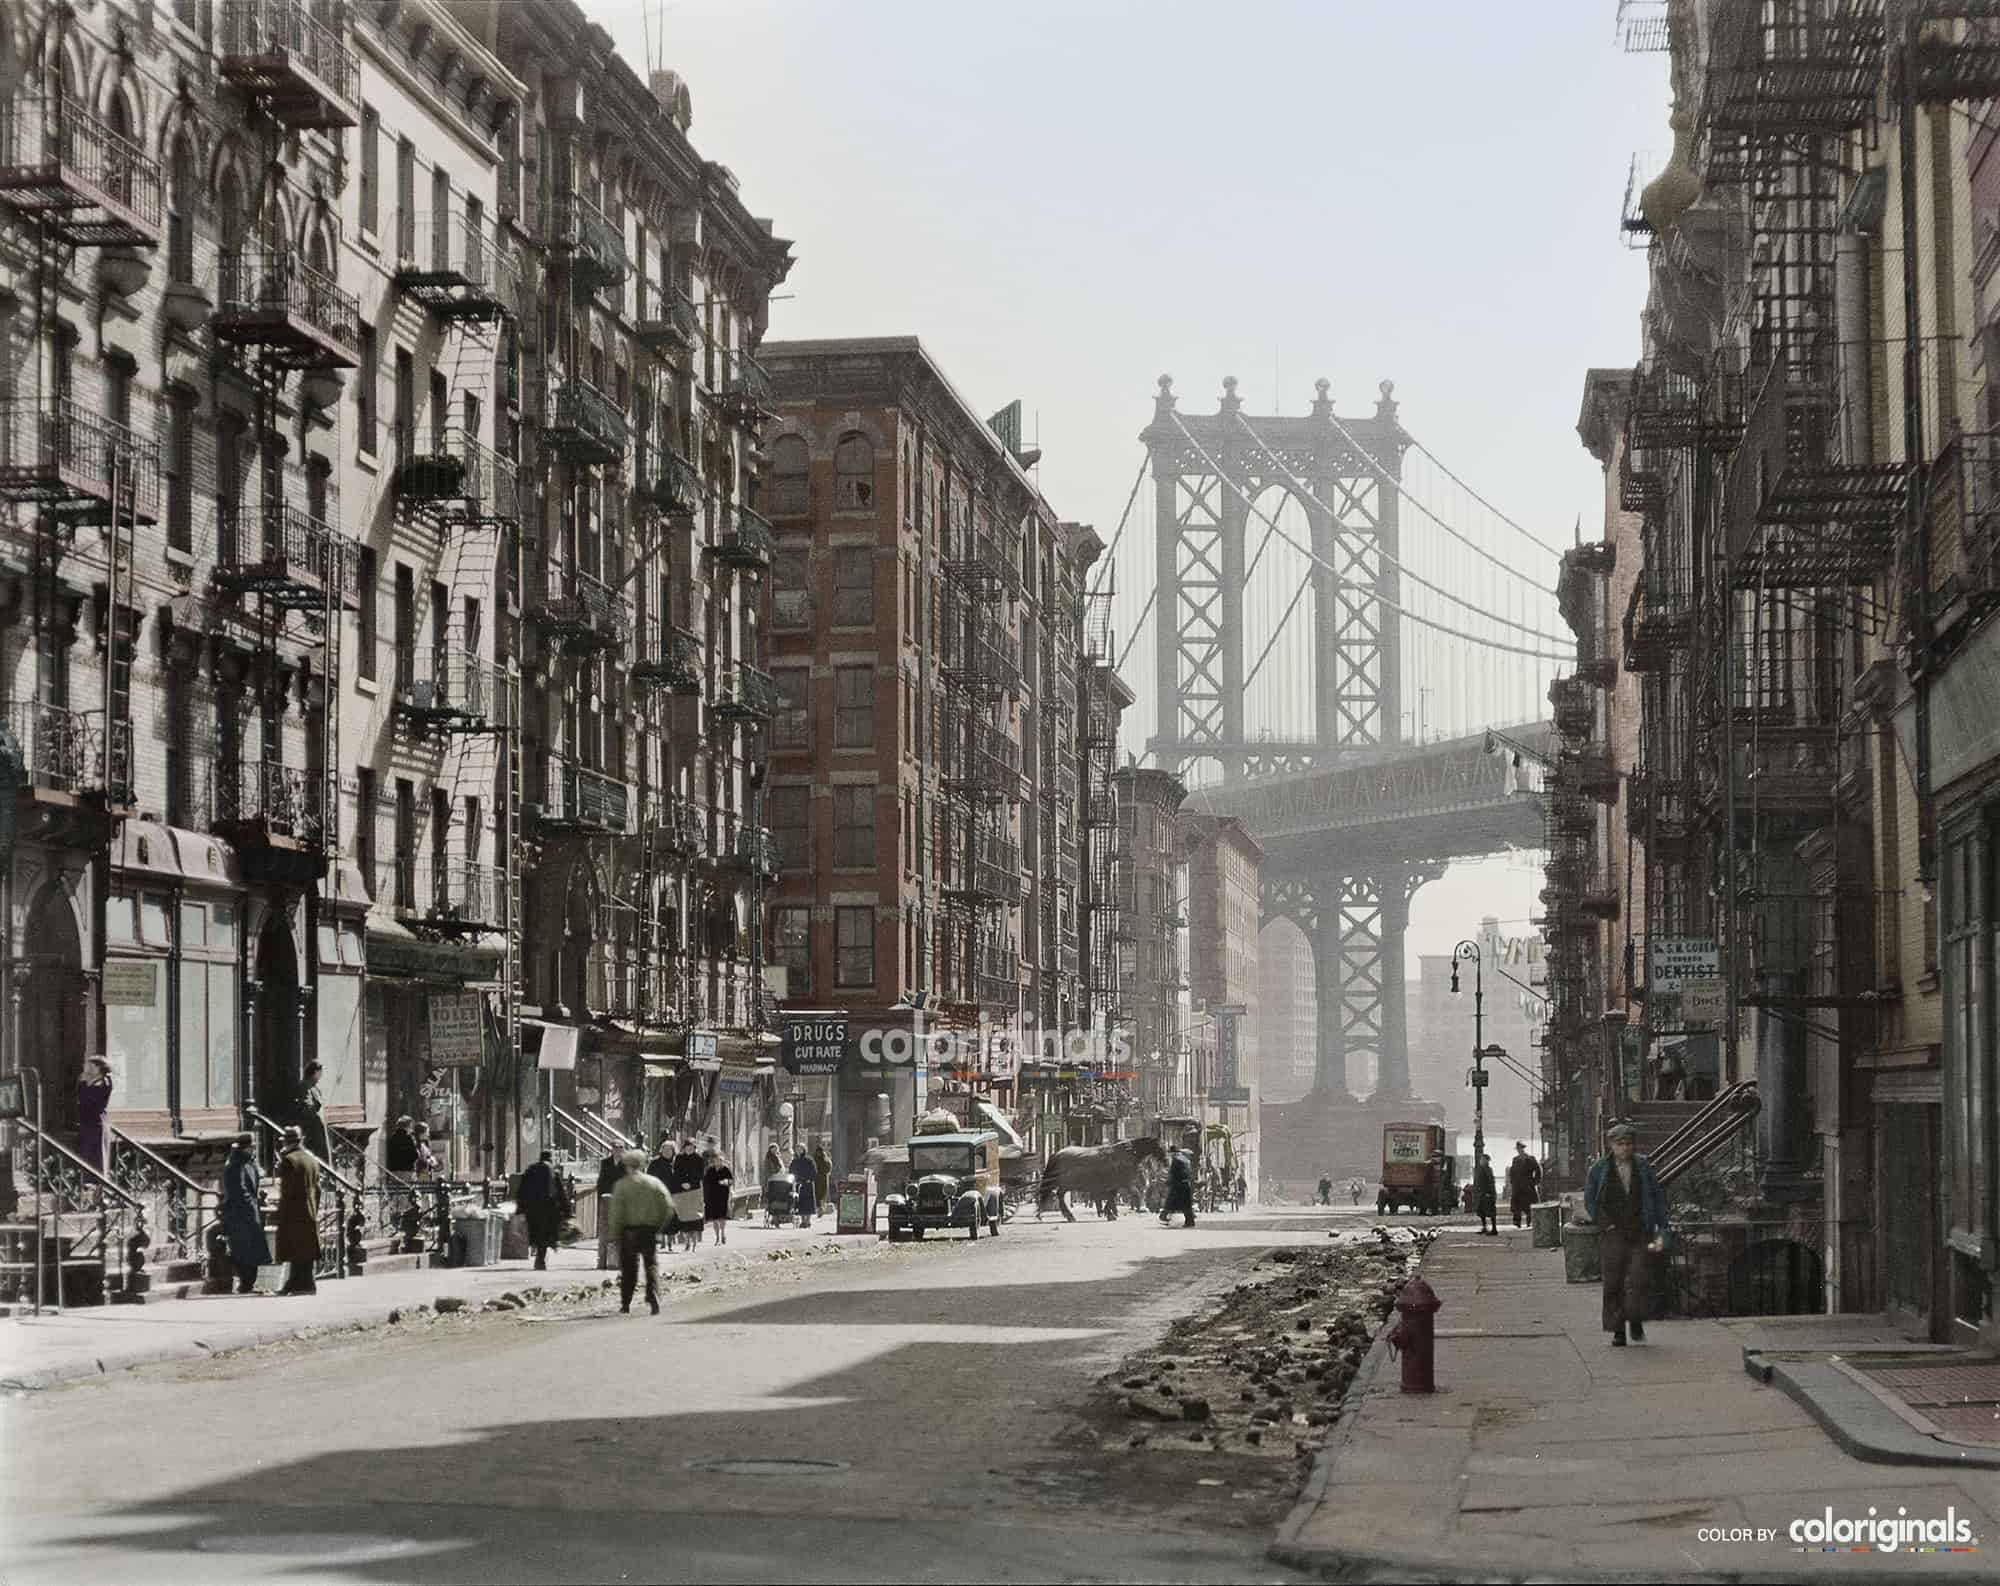 ManhattanBridge_NY_1936Coloriginals